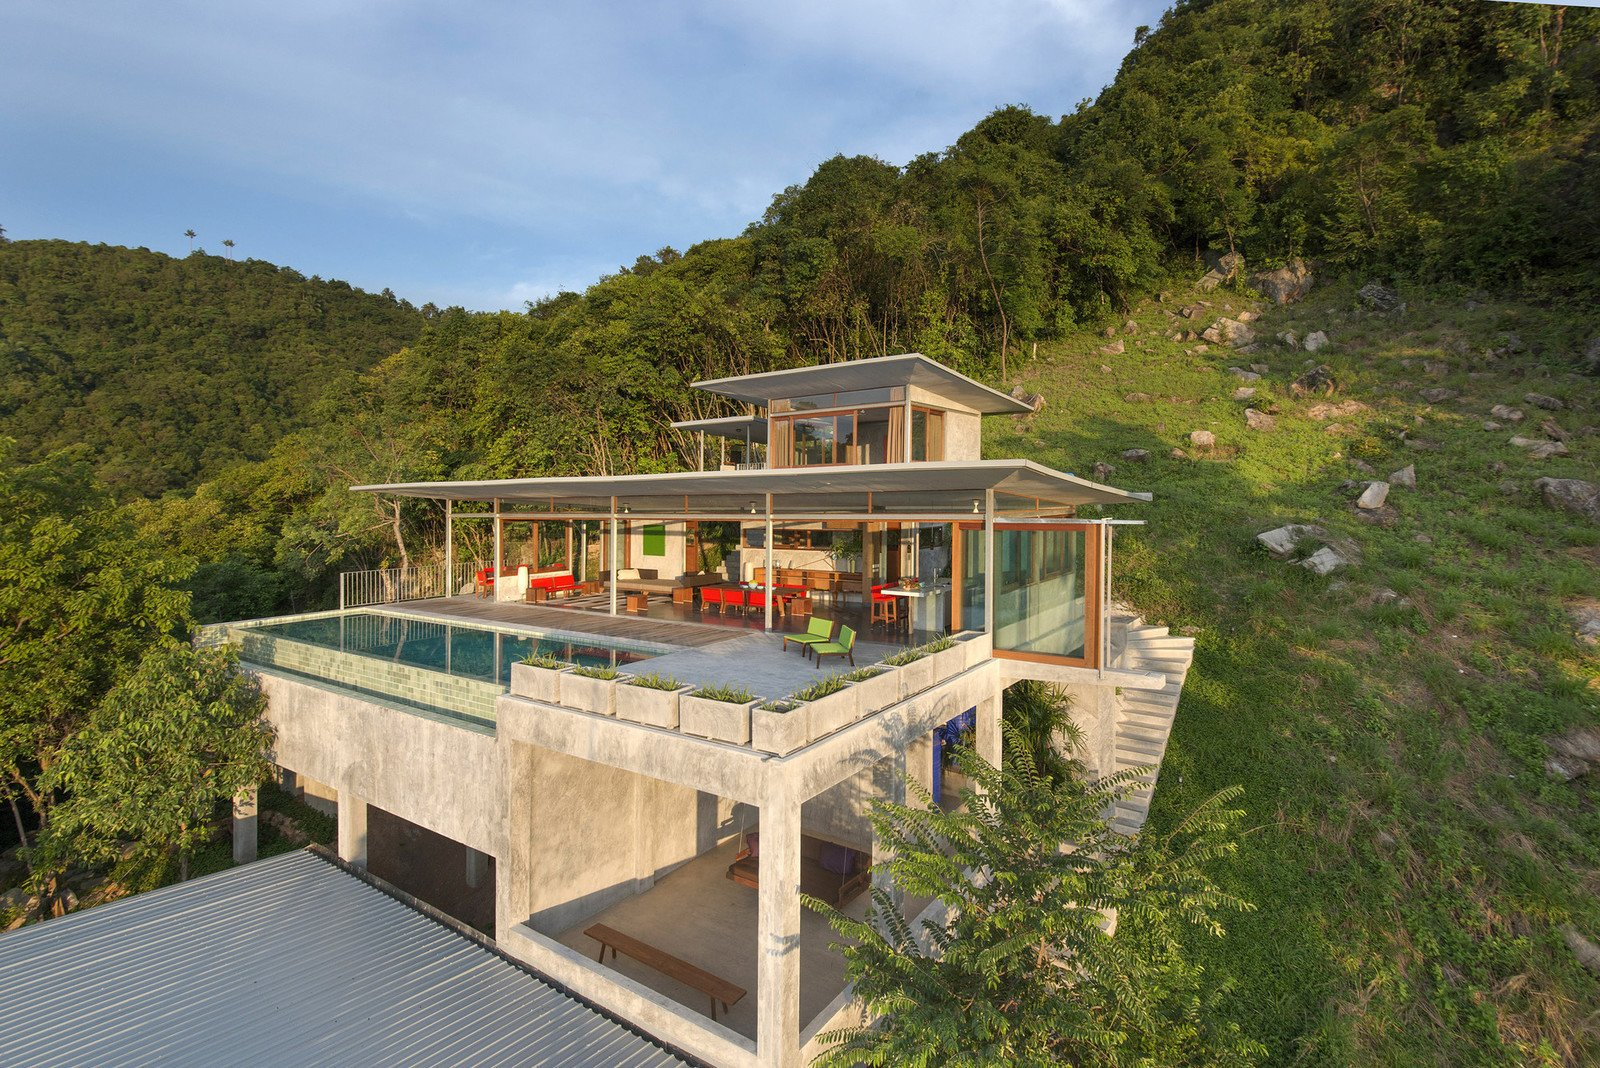 Tagged: Infinity Pools, Tubs, Shower, Wood Patio, Porch, Deck, Concrete Patio, Porch, Deck, Trees, Back Yard, Exterior, Concrete Siding Material, and House.  Photo 2 of 11 in Take a Trip to This Photographer-Designed Concrete Home in Thailand